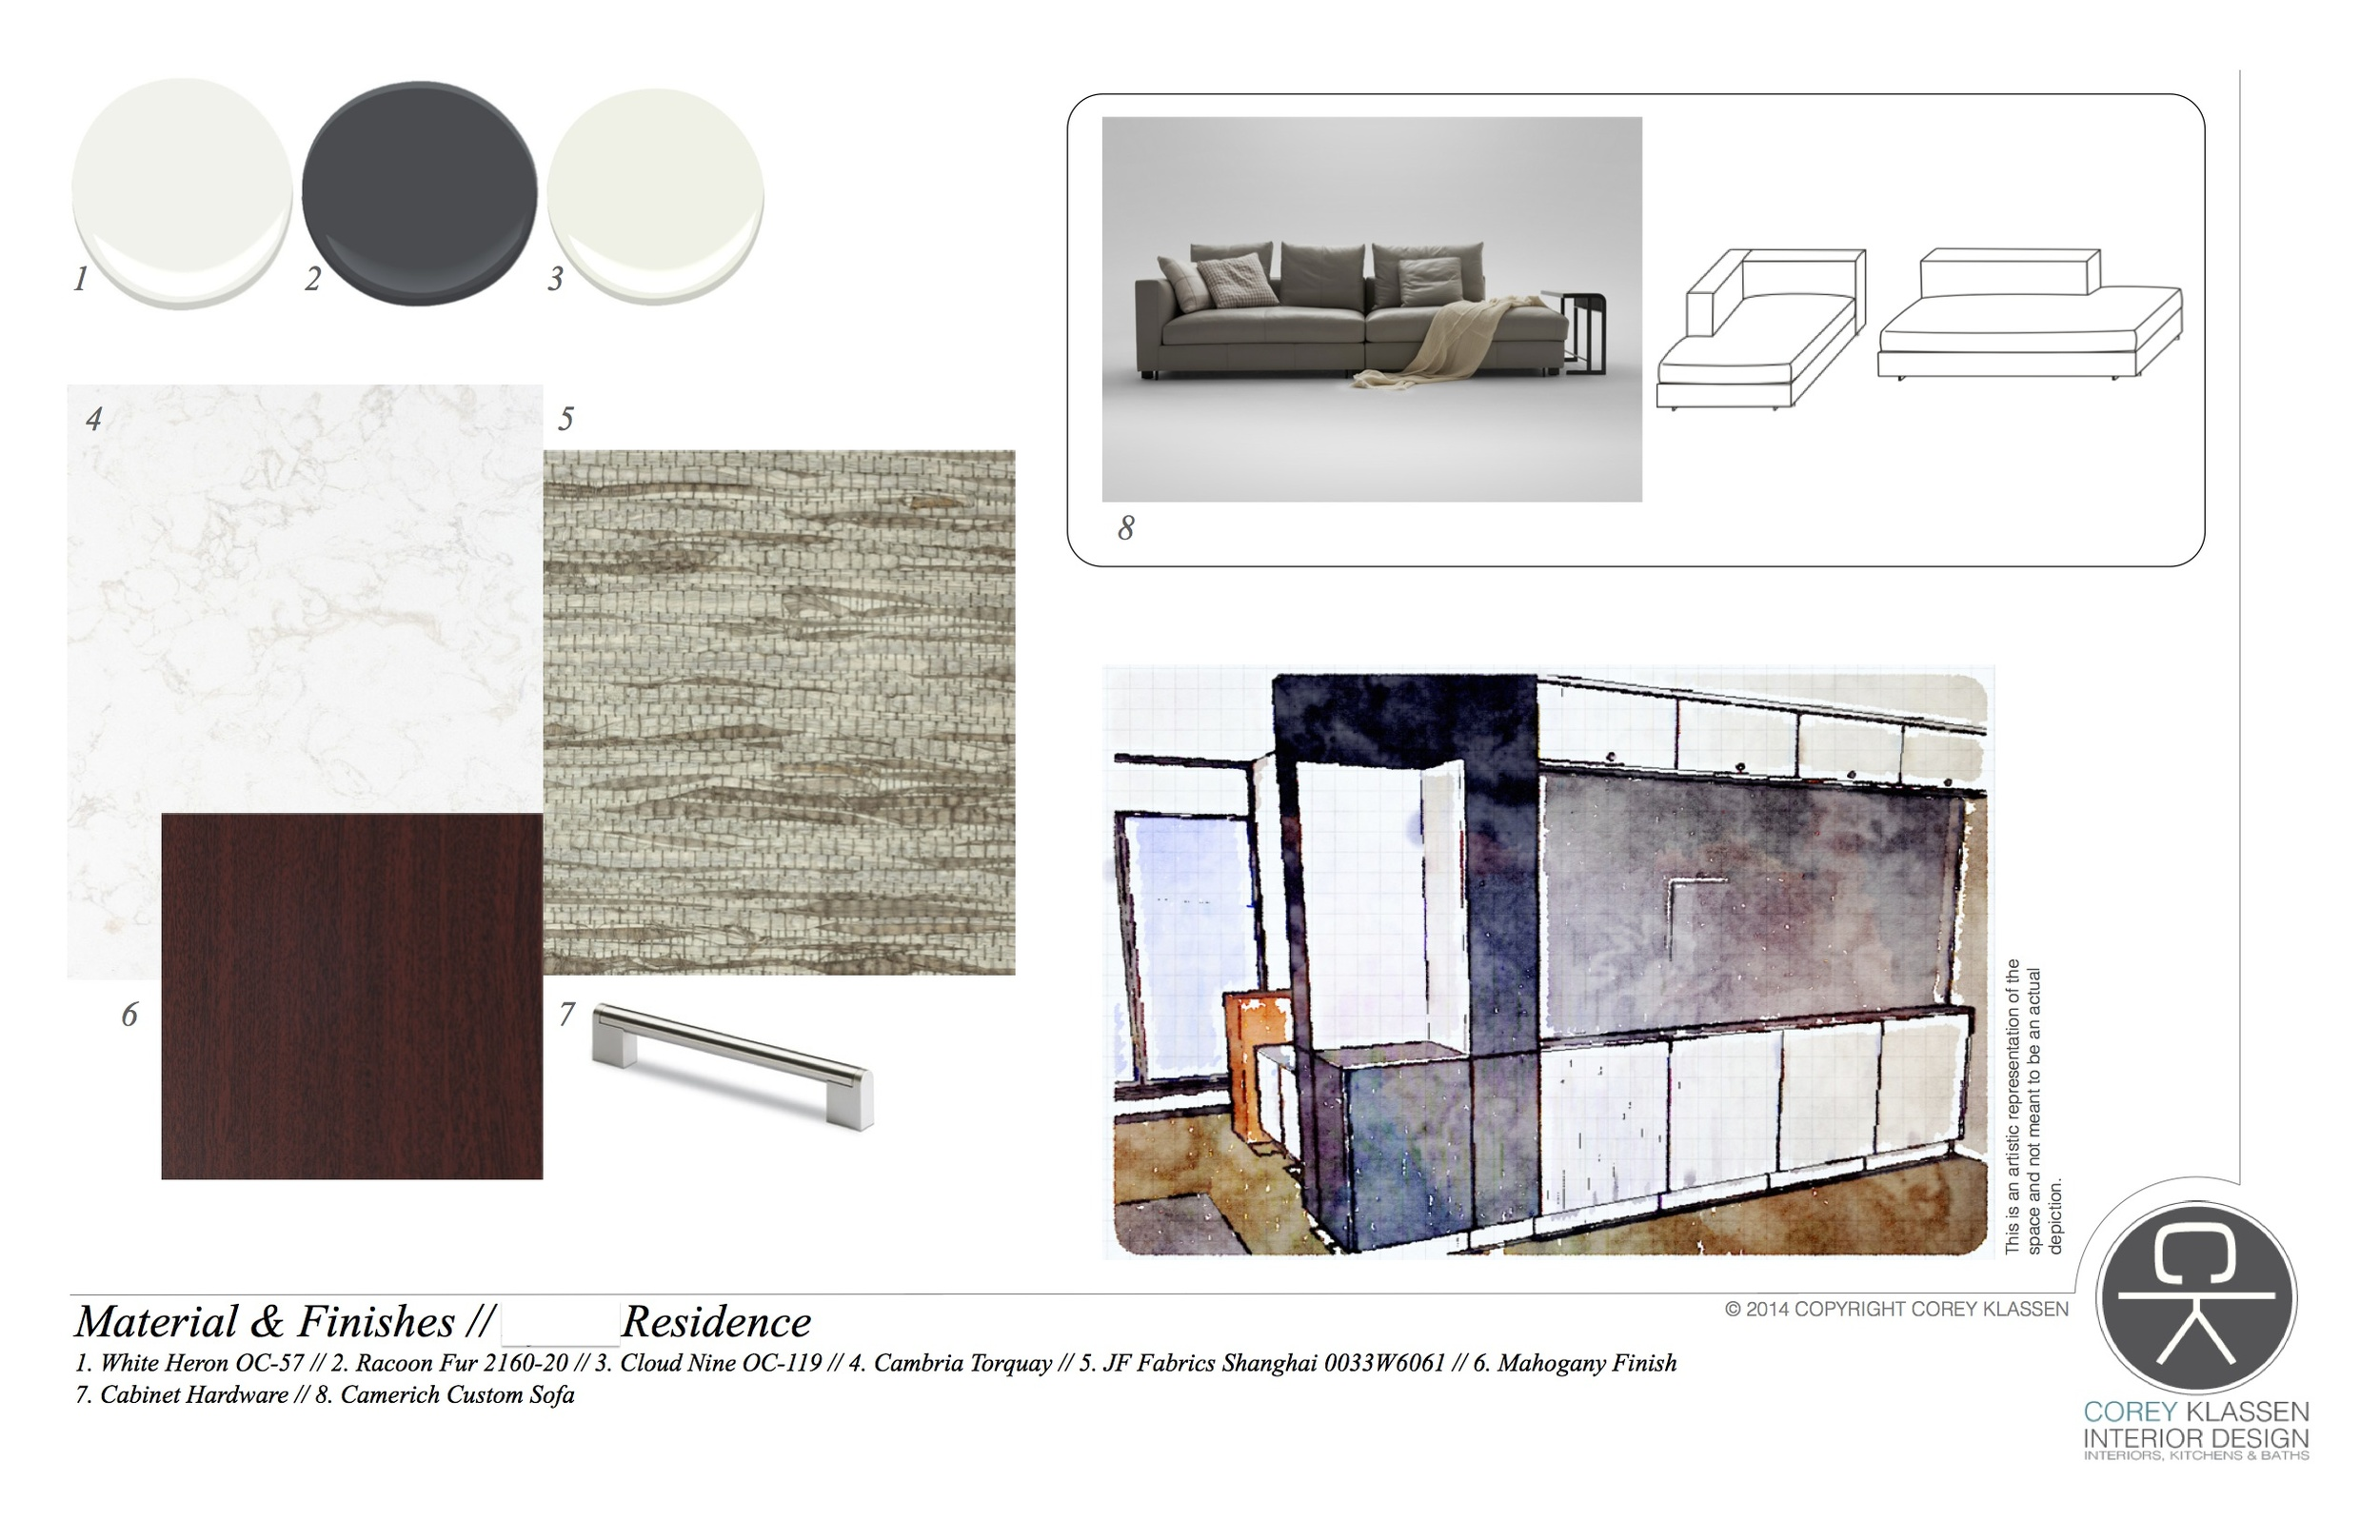 The concept board: yes, I know, Racoon Fur strikes again! This time, it's marrying a matte with high-gloss, whites, JF Fabrics Shanghai grass cloth... and just you wait for the new entry closet details because they are SPESSSSSH-AL!